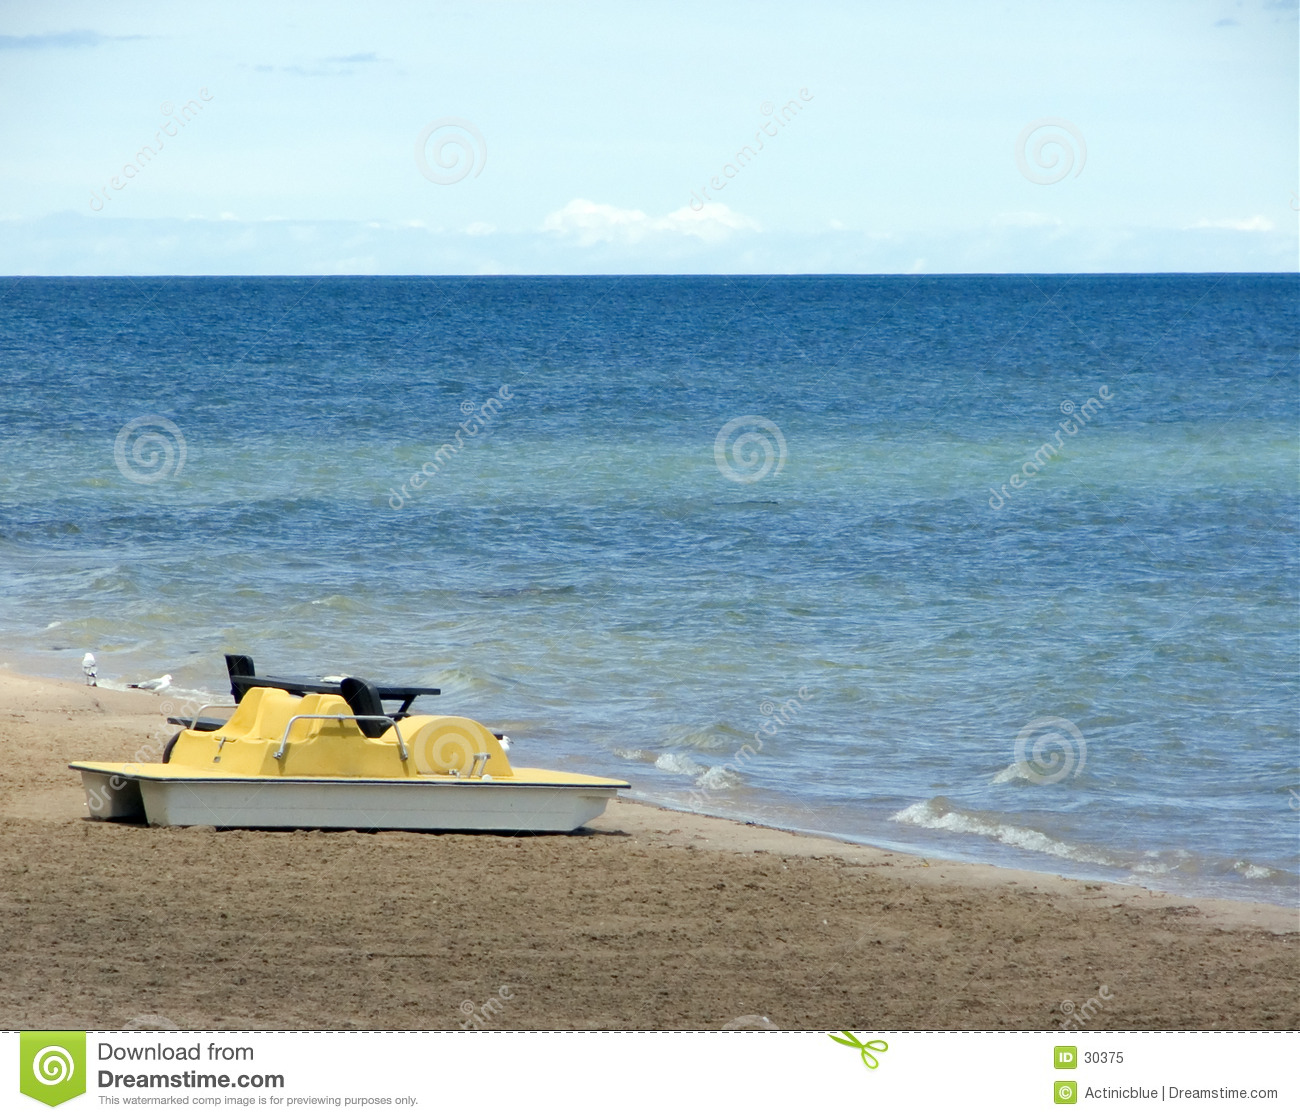 Paddle boat and table on the beach.